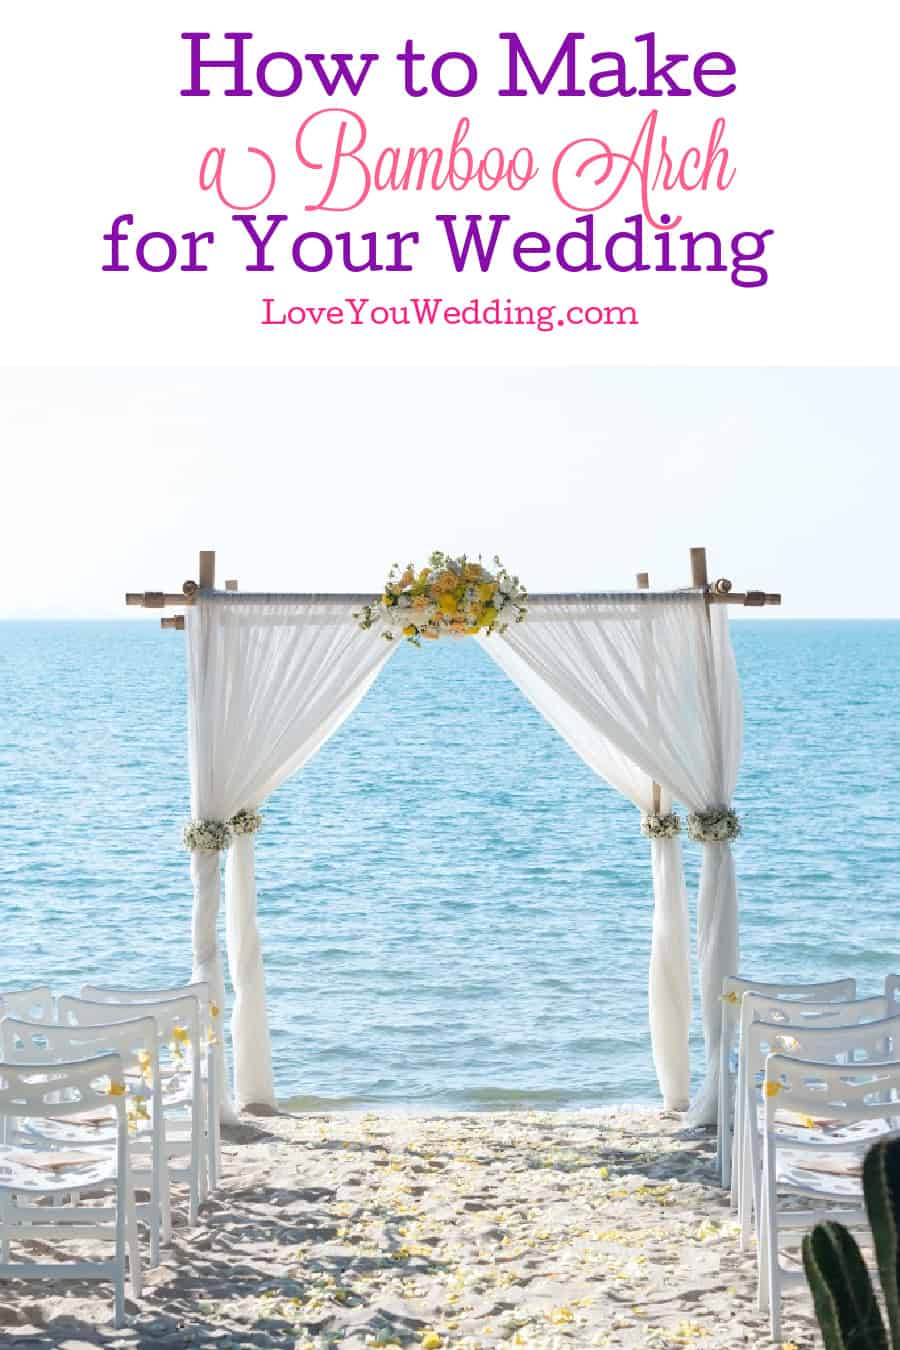 Want to make a beautiful bamboo arch for your wedding? Check out these fabulous tutorials!